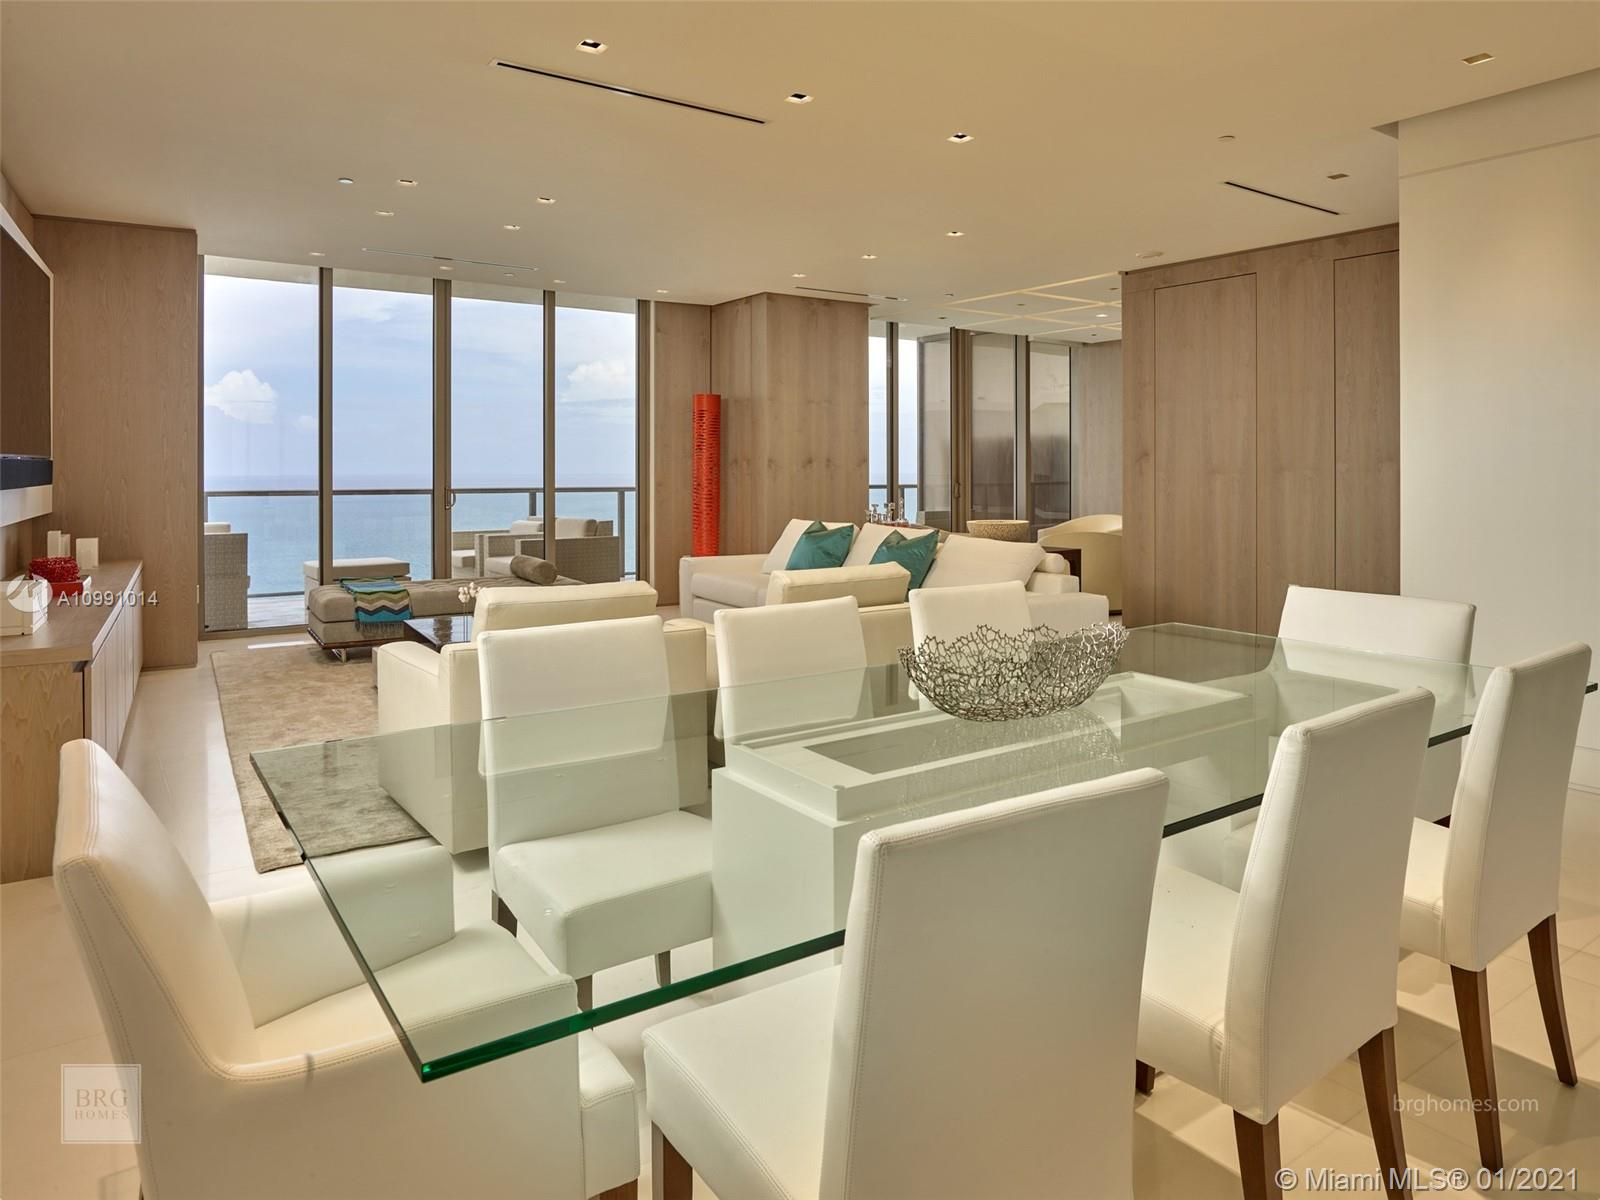 9701  Collins Ave #2704S For Sale A10991014, FL